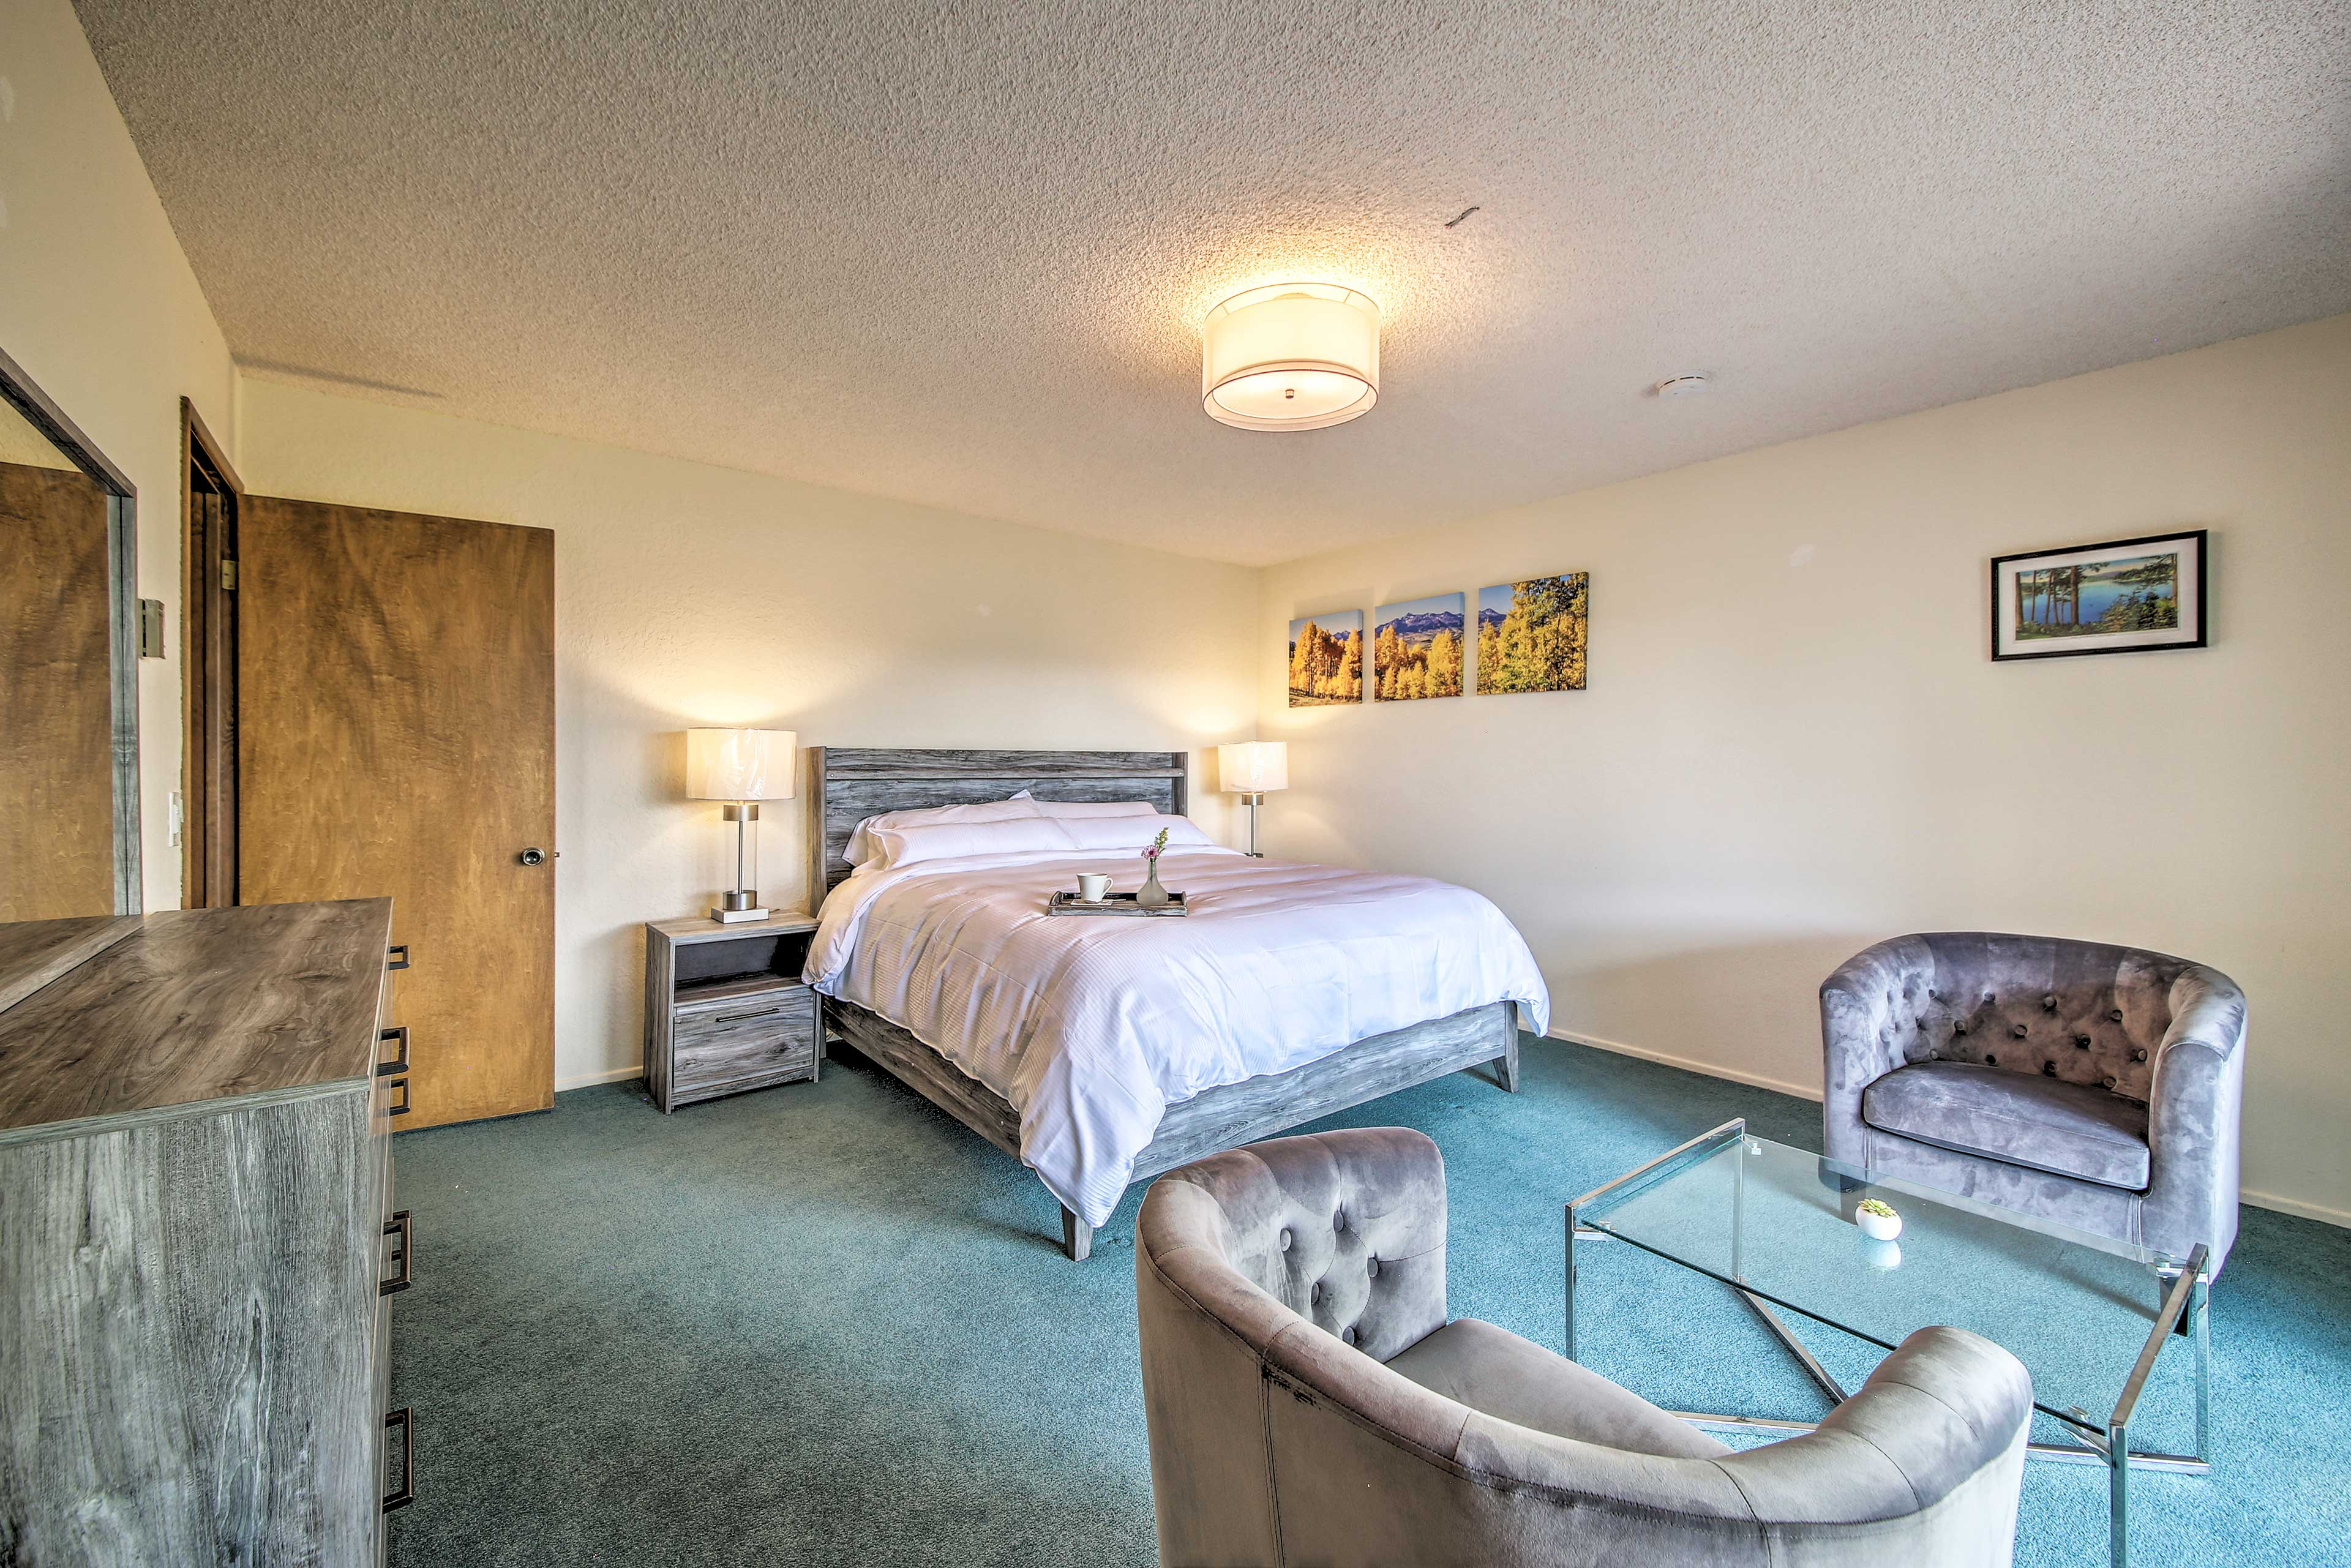 Head to the second level of the home and enjoy bedroom 2.